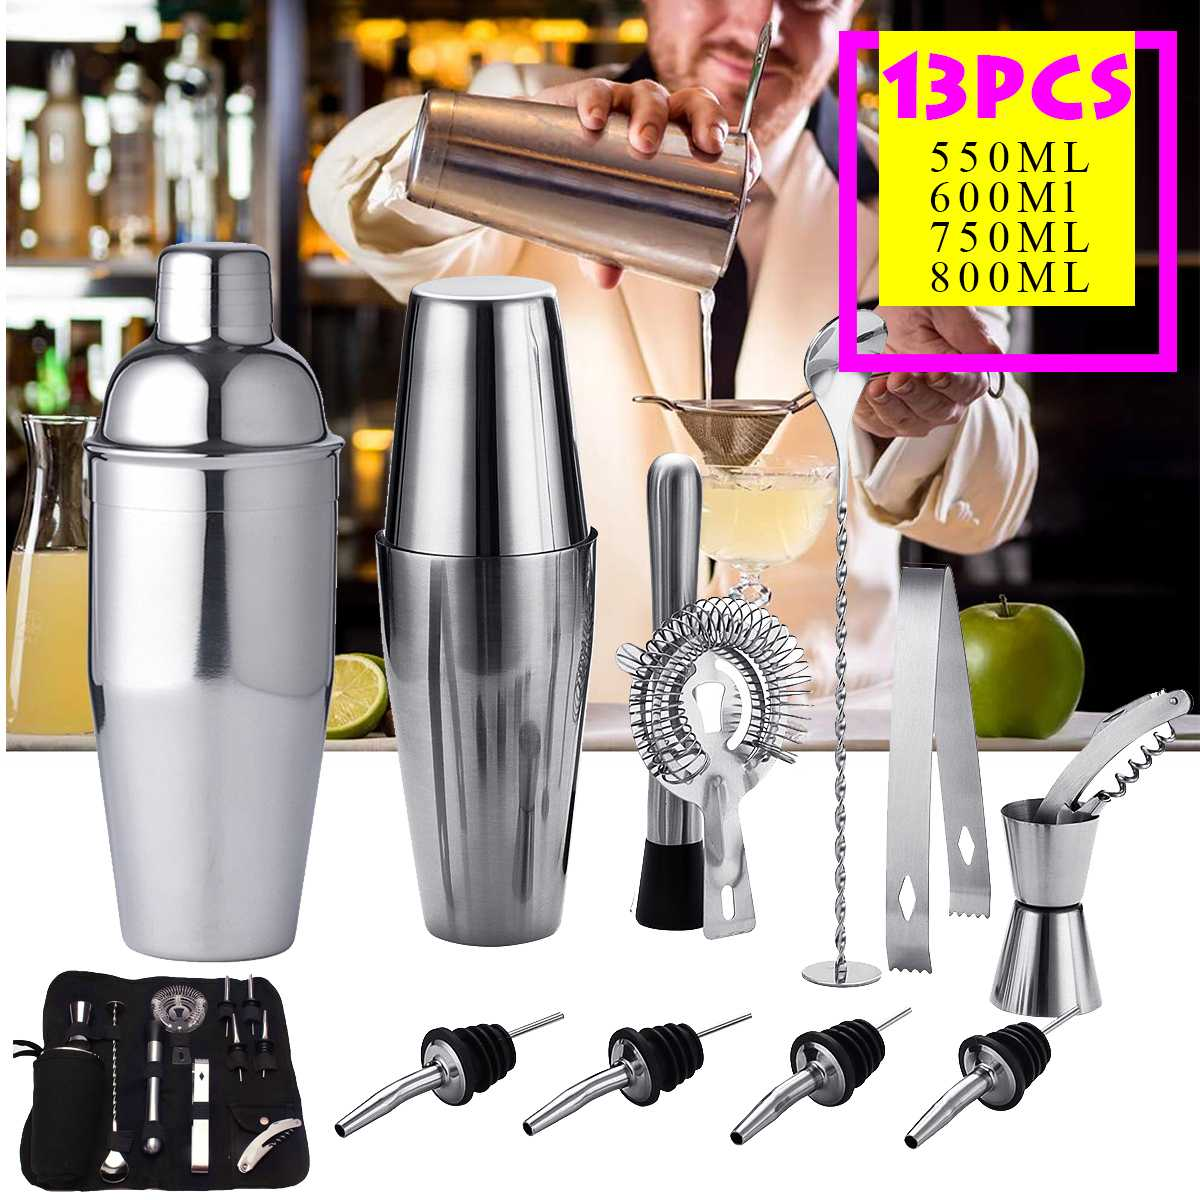 12/13pcs Professional American Style /British Cocktail Shaker Set Maker Mixer Stainless Steel Bar Bartending Tools Cocktail